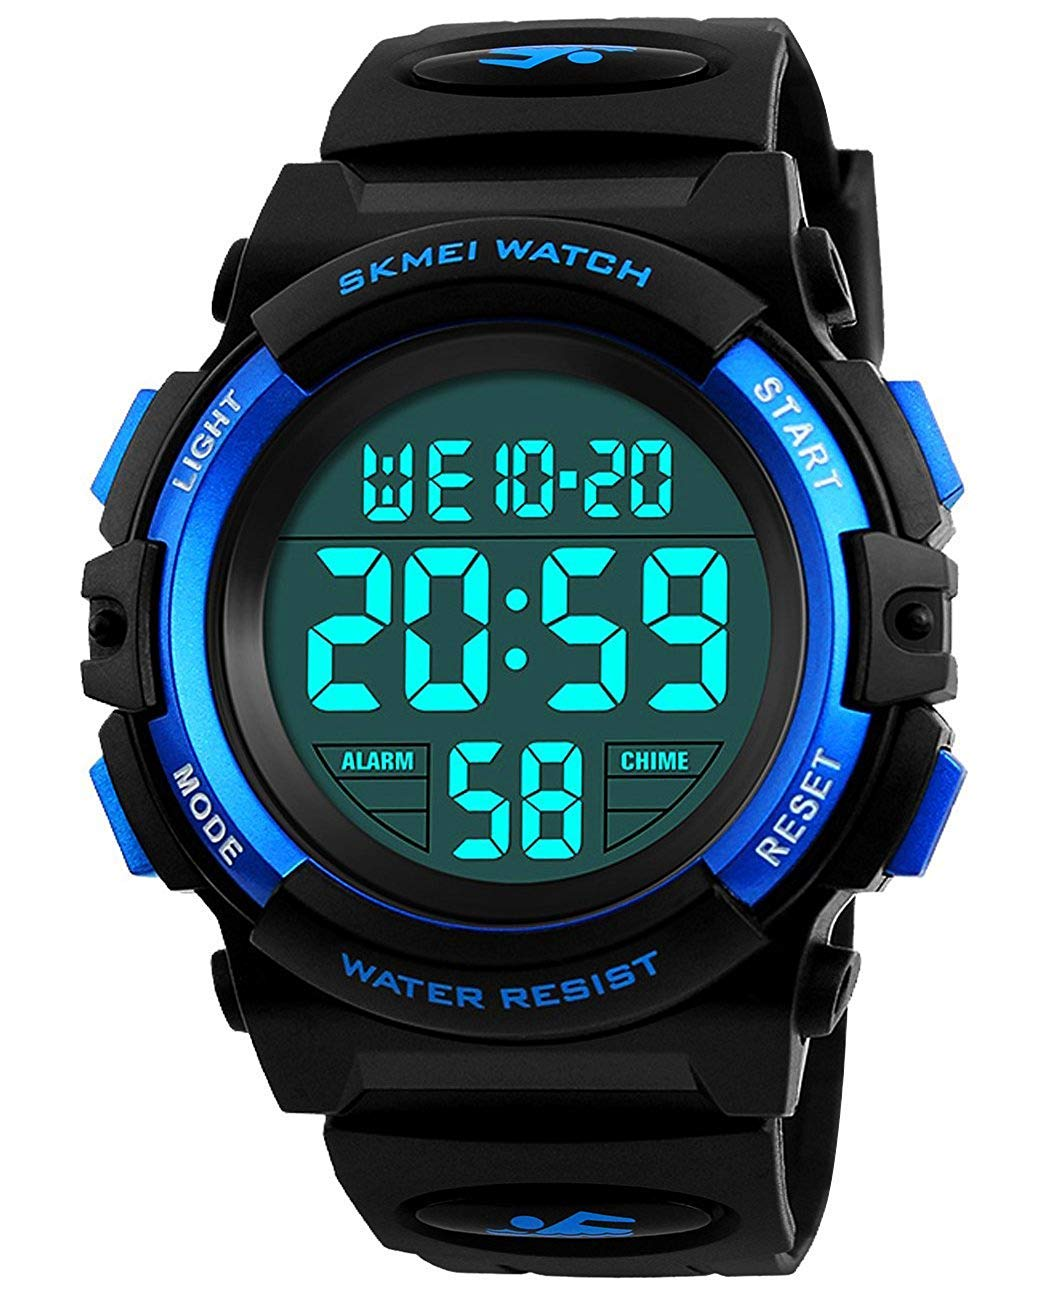 Kids Digital Sports Watch for Boys Girls, Boy Waterproof Casual Electronic Analog Quartz Led Watches with Alarm Stopwatch Silicone Band Luminous Wristatches